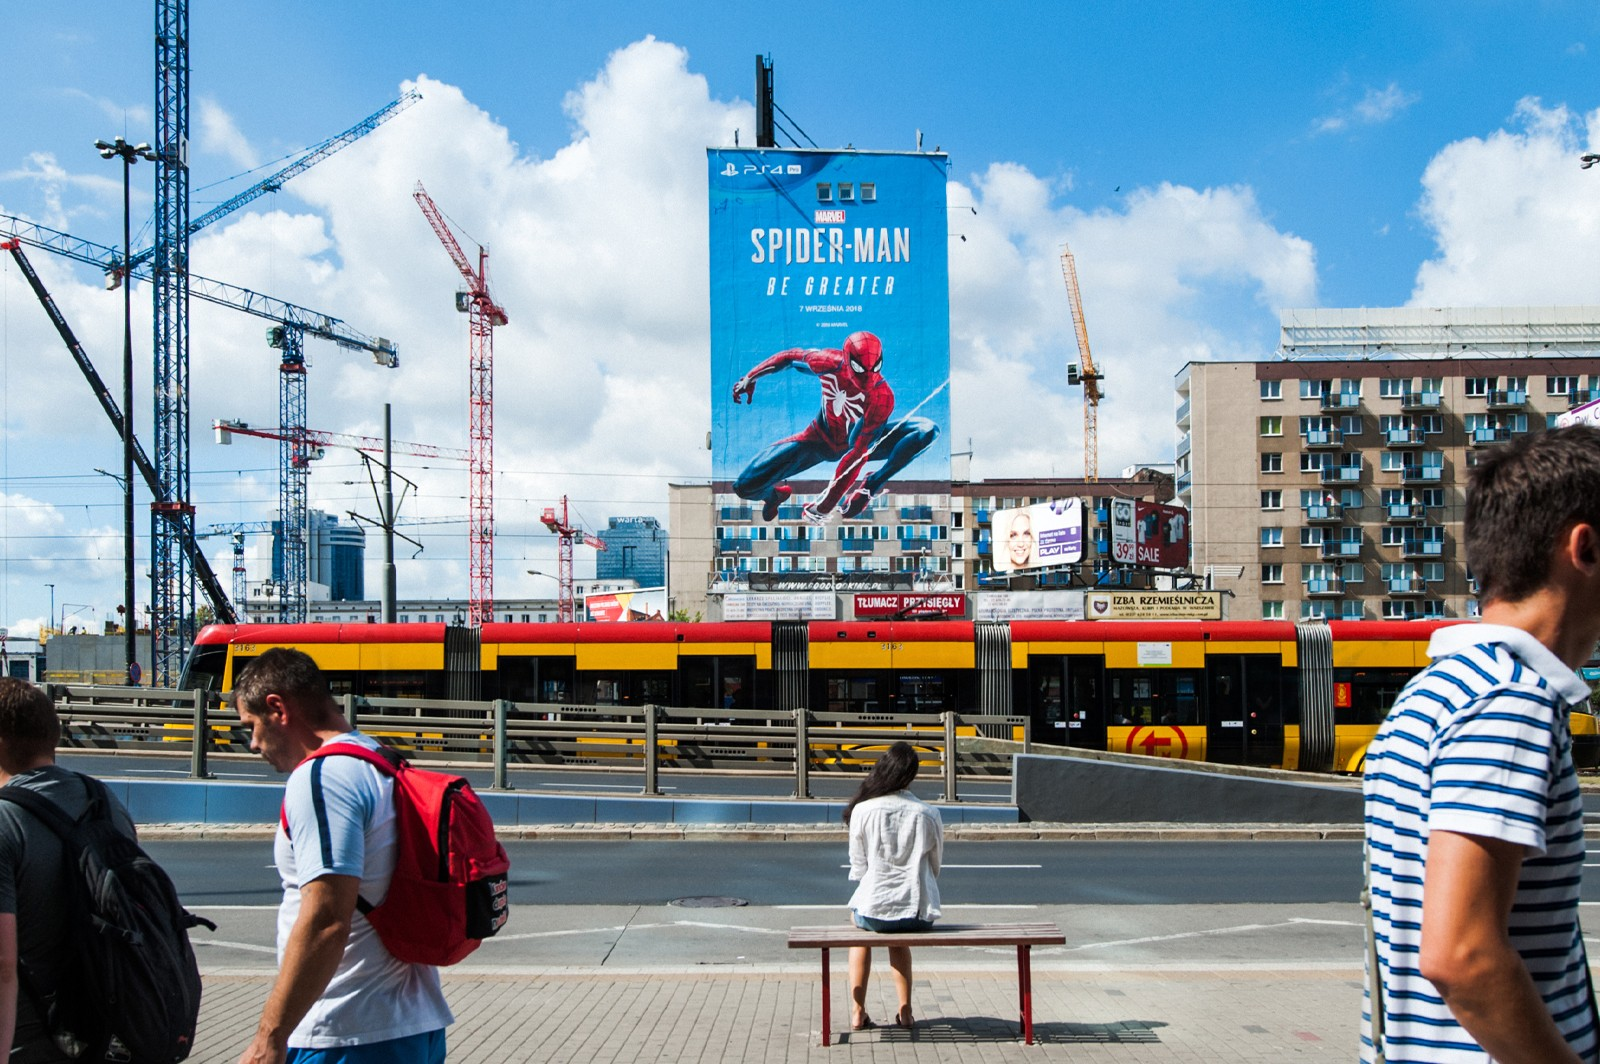 spiderman be greater on chmielna street in Warsaw | SPIDER-MAN BE GREATER | Portfolio